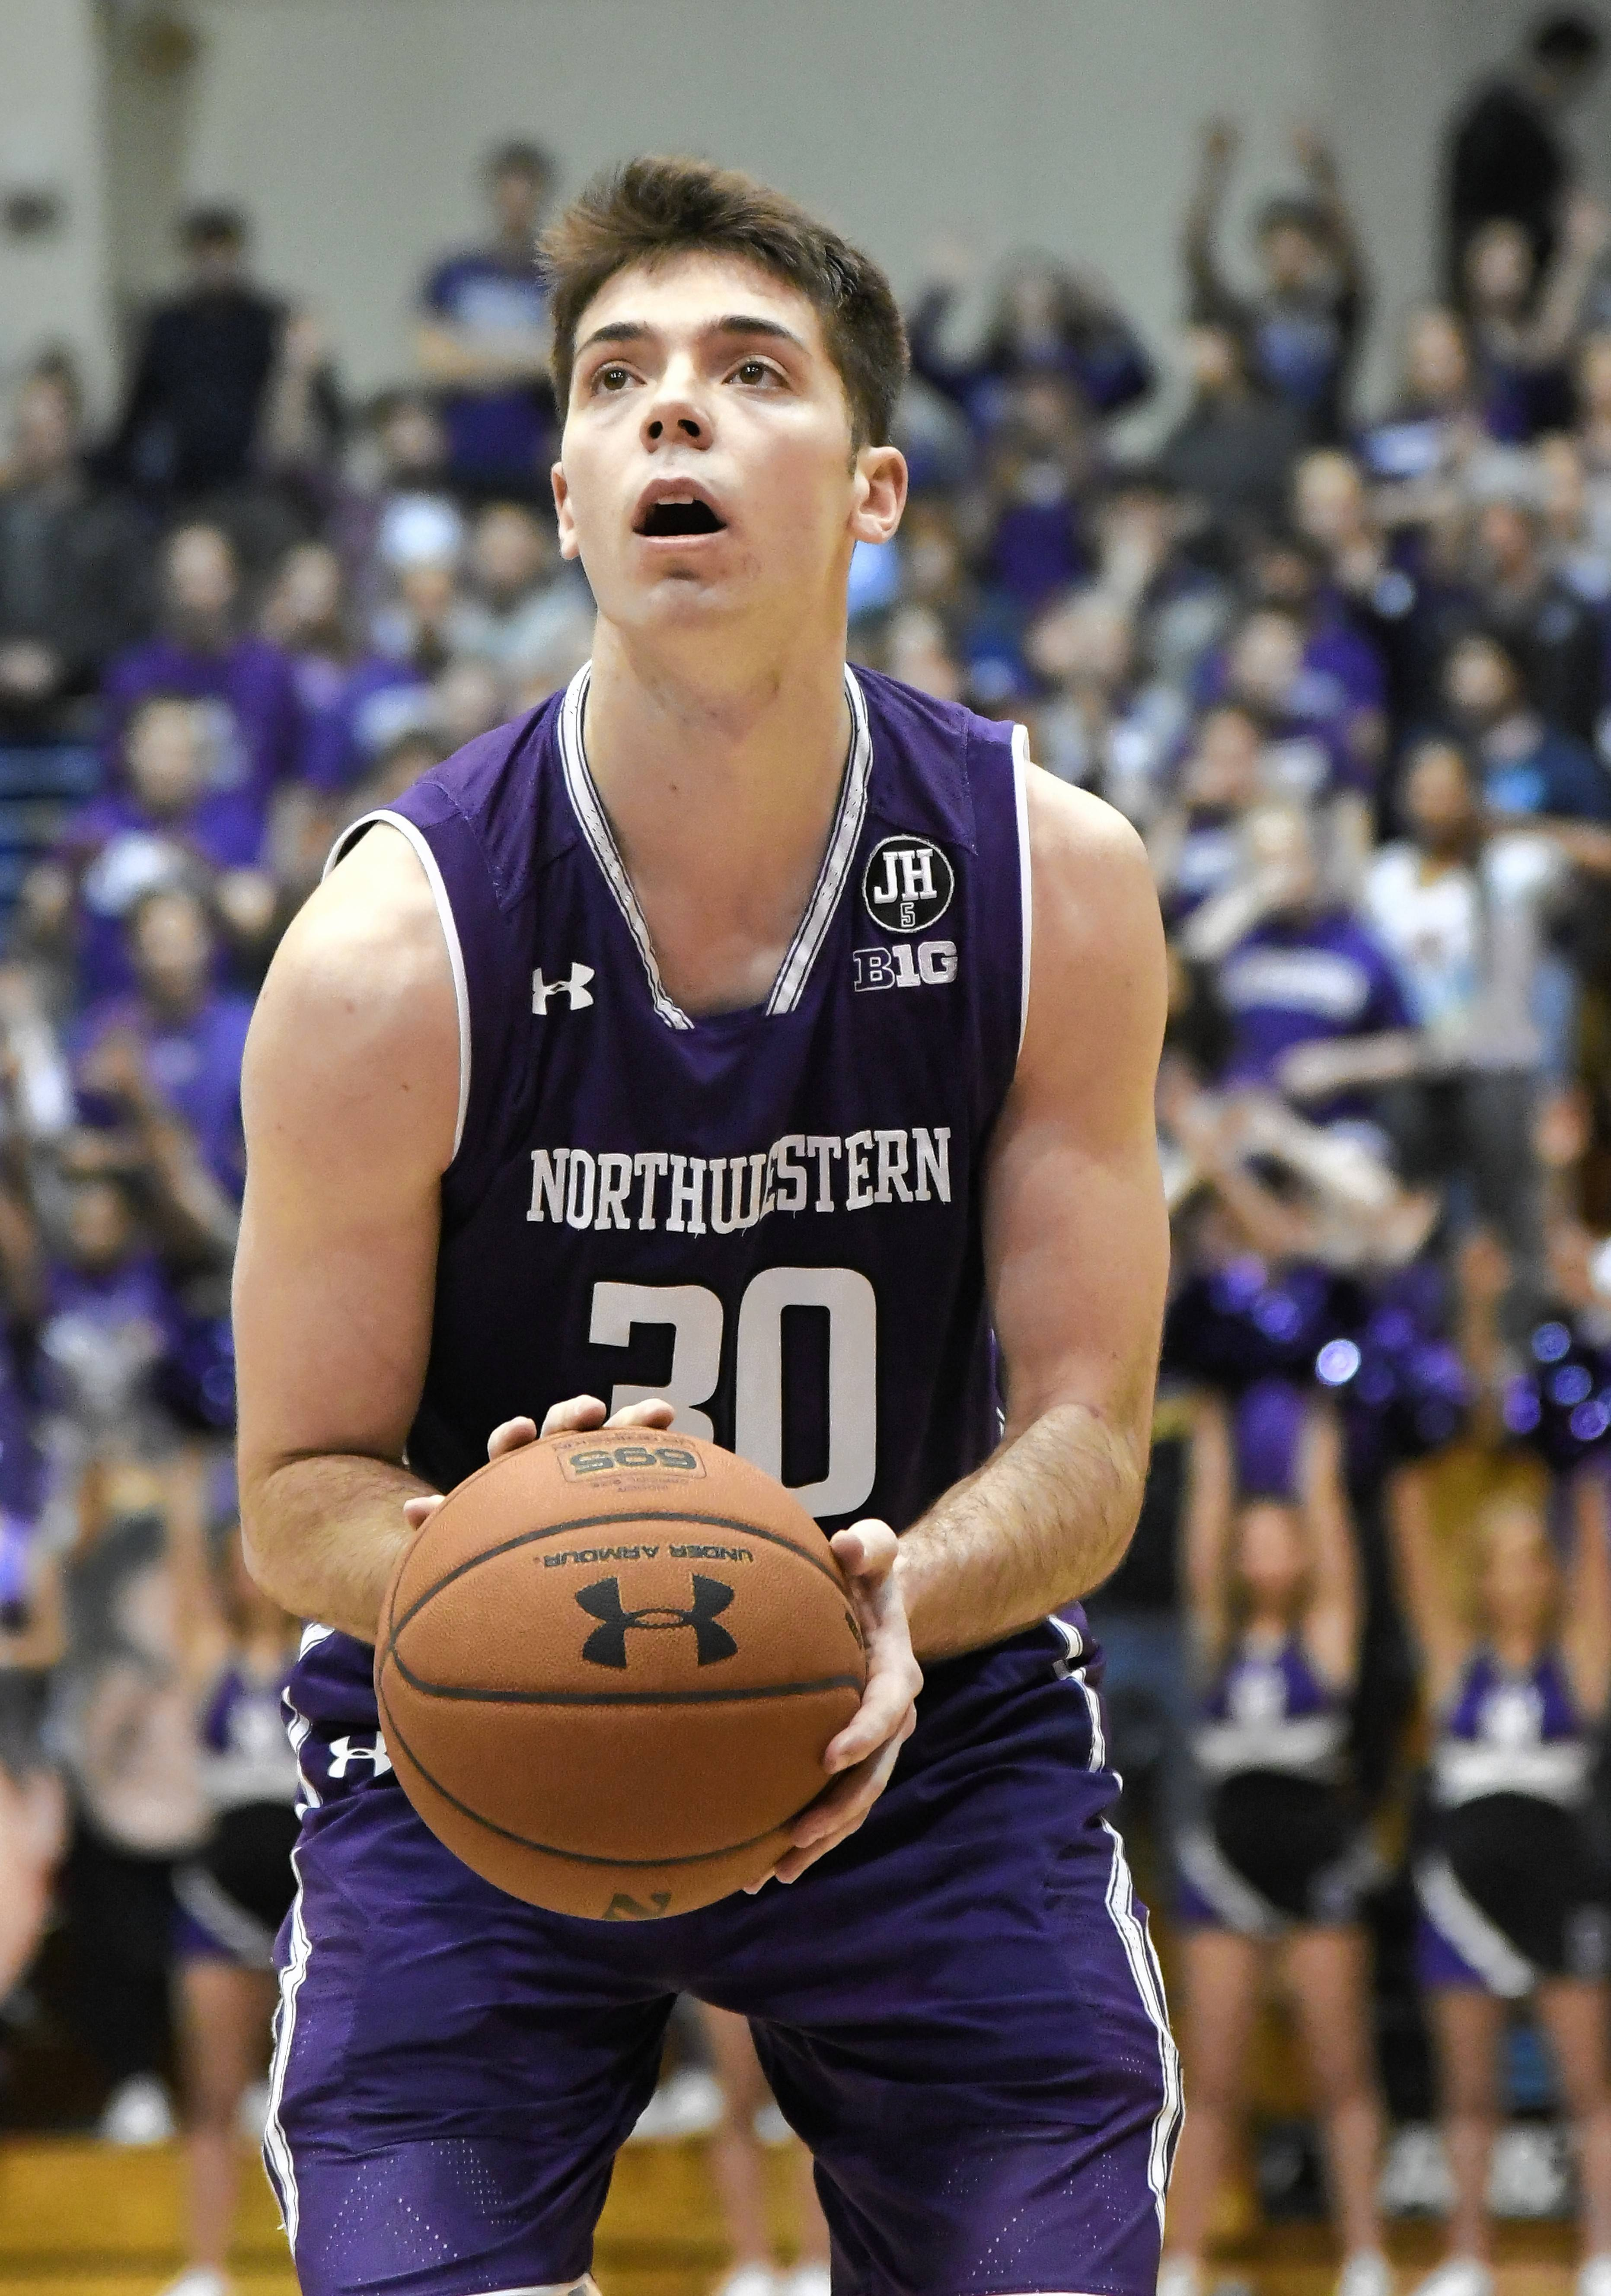 Northwestern guard Bryant McIntosh (30) shoots free throws against Illinois during the second half of an NCAA college basketball game Tuesday, Feb. 7, 2017, in Evanston, Ill. Illinois won 68-61.